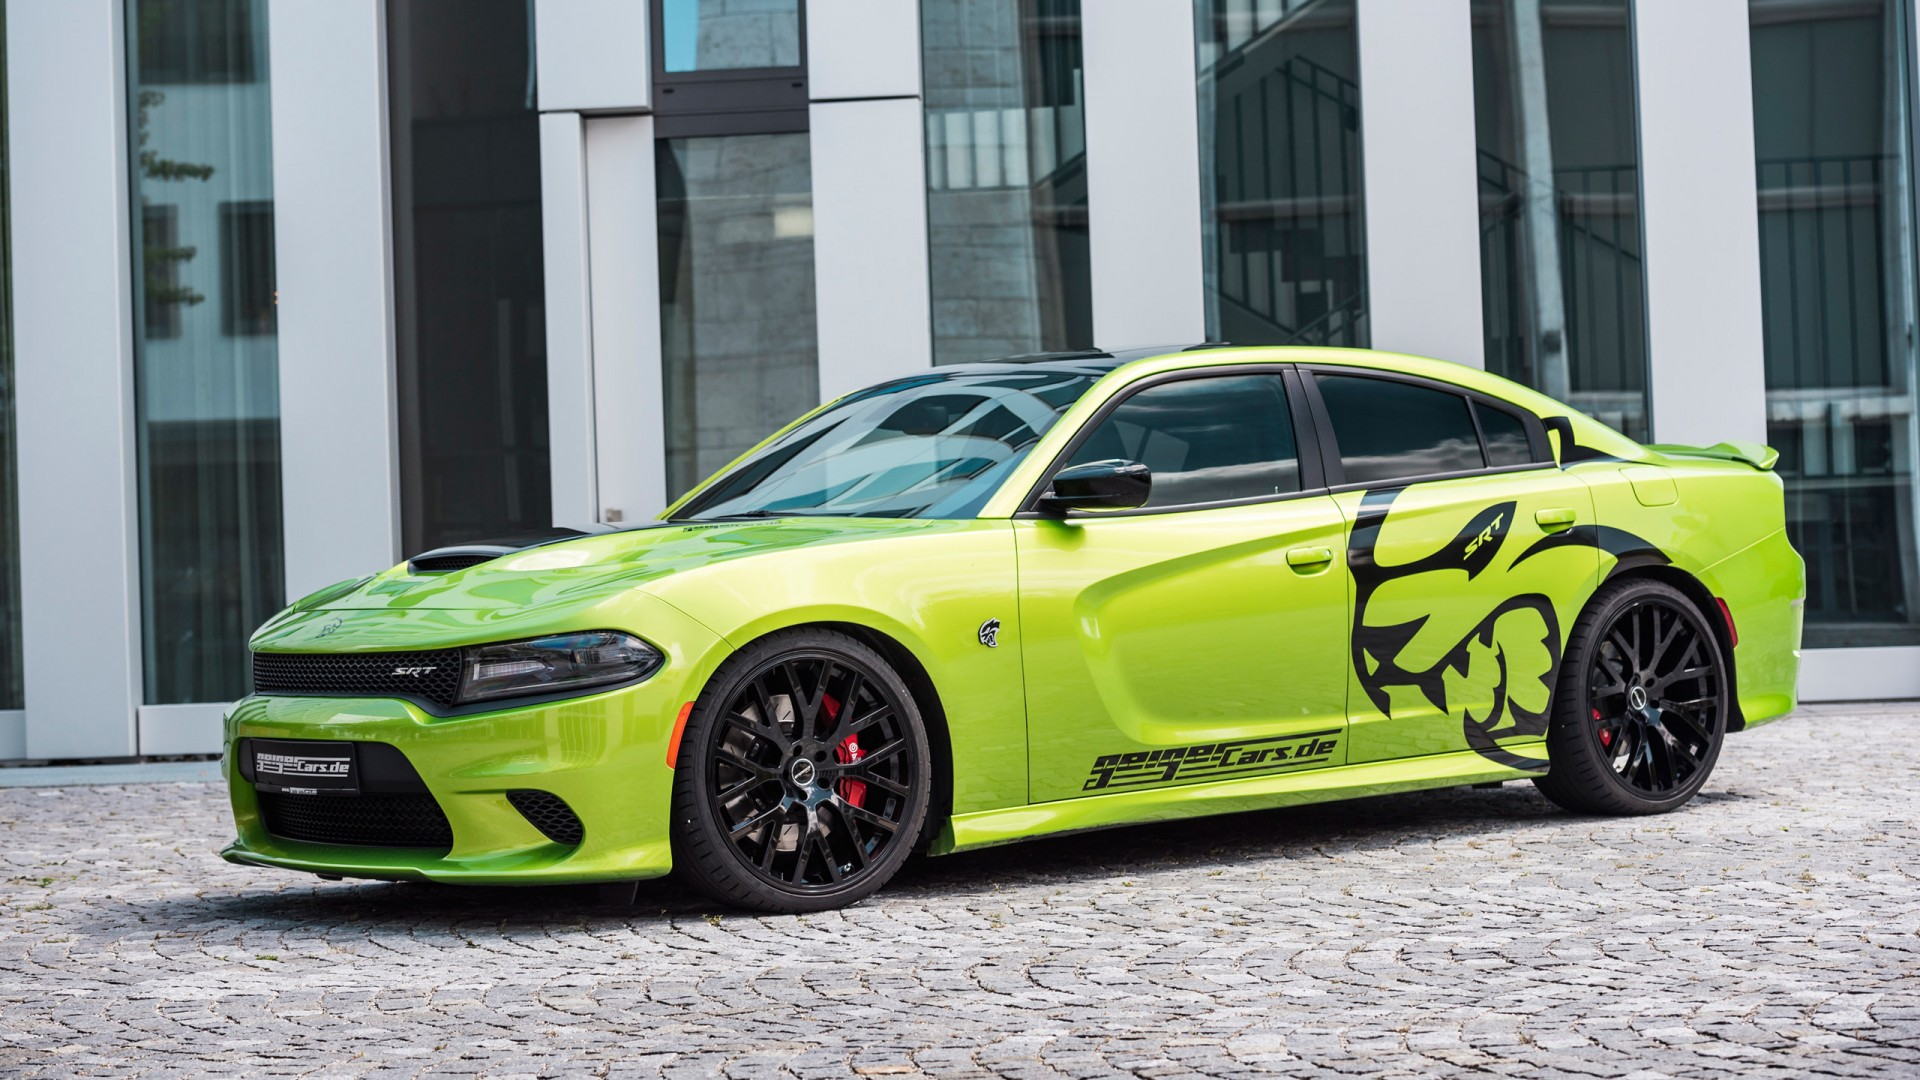 Charger Srt Hellcat >> 2016 Geigercars Dodge Charger SRT Hellcat Wallpaper | HD Car Wallpapers | ID #7010